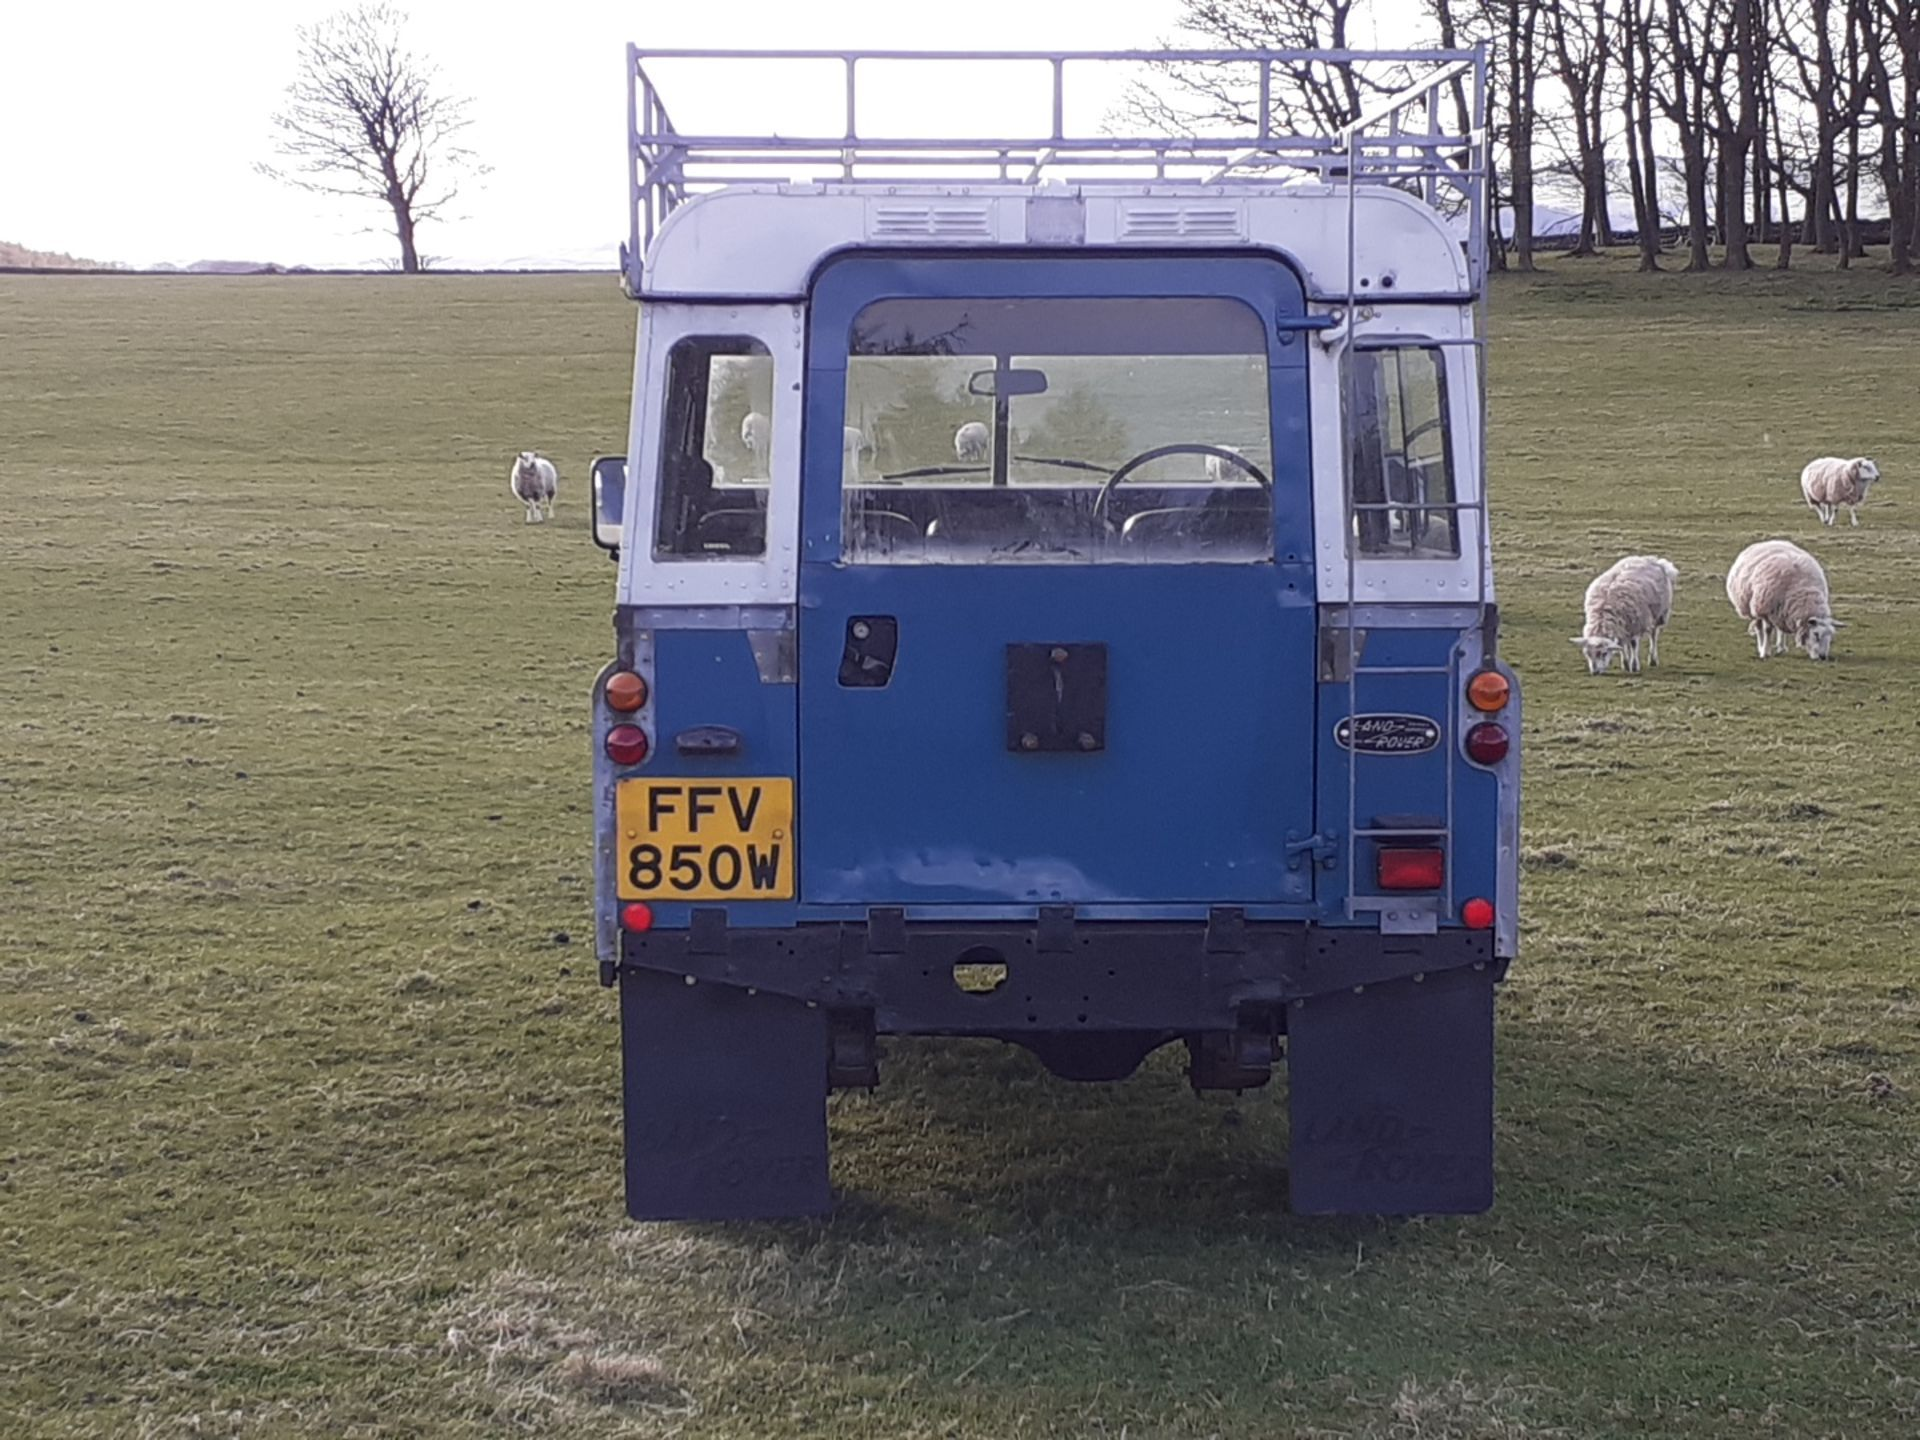 1980 LAND ROVER SERIES III CLASSIC STATION WAGON, TAX AND MOT EXEMPT *NO VAT* - Image 9 of 22